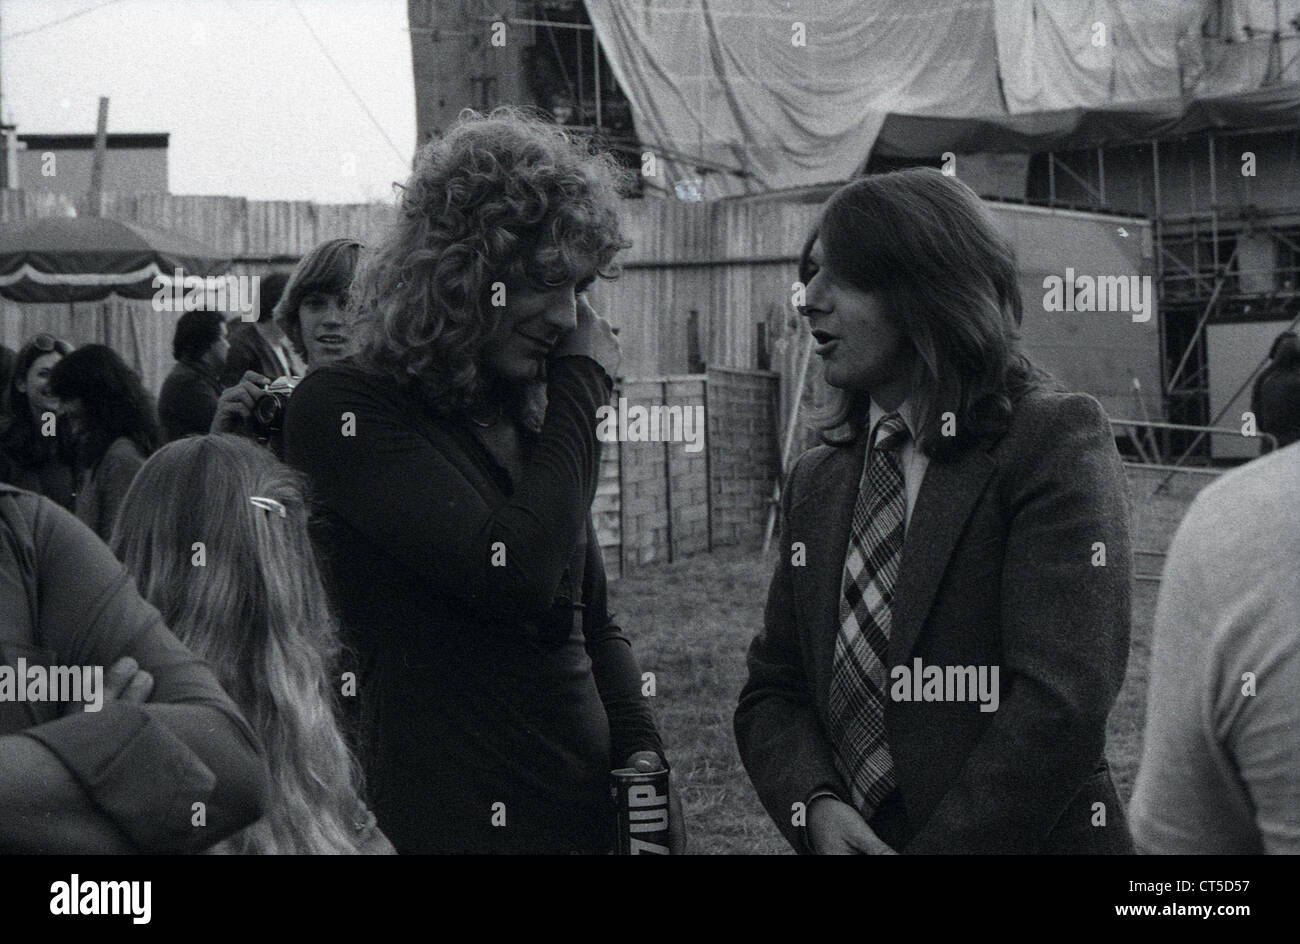 009474 - Robert Plant backstage at the Knebworth Festival in August 1979 - Stock Image